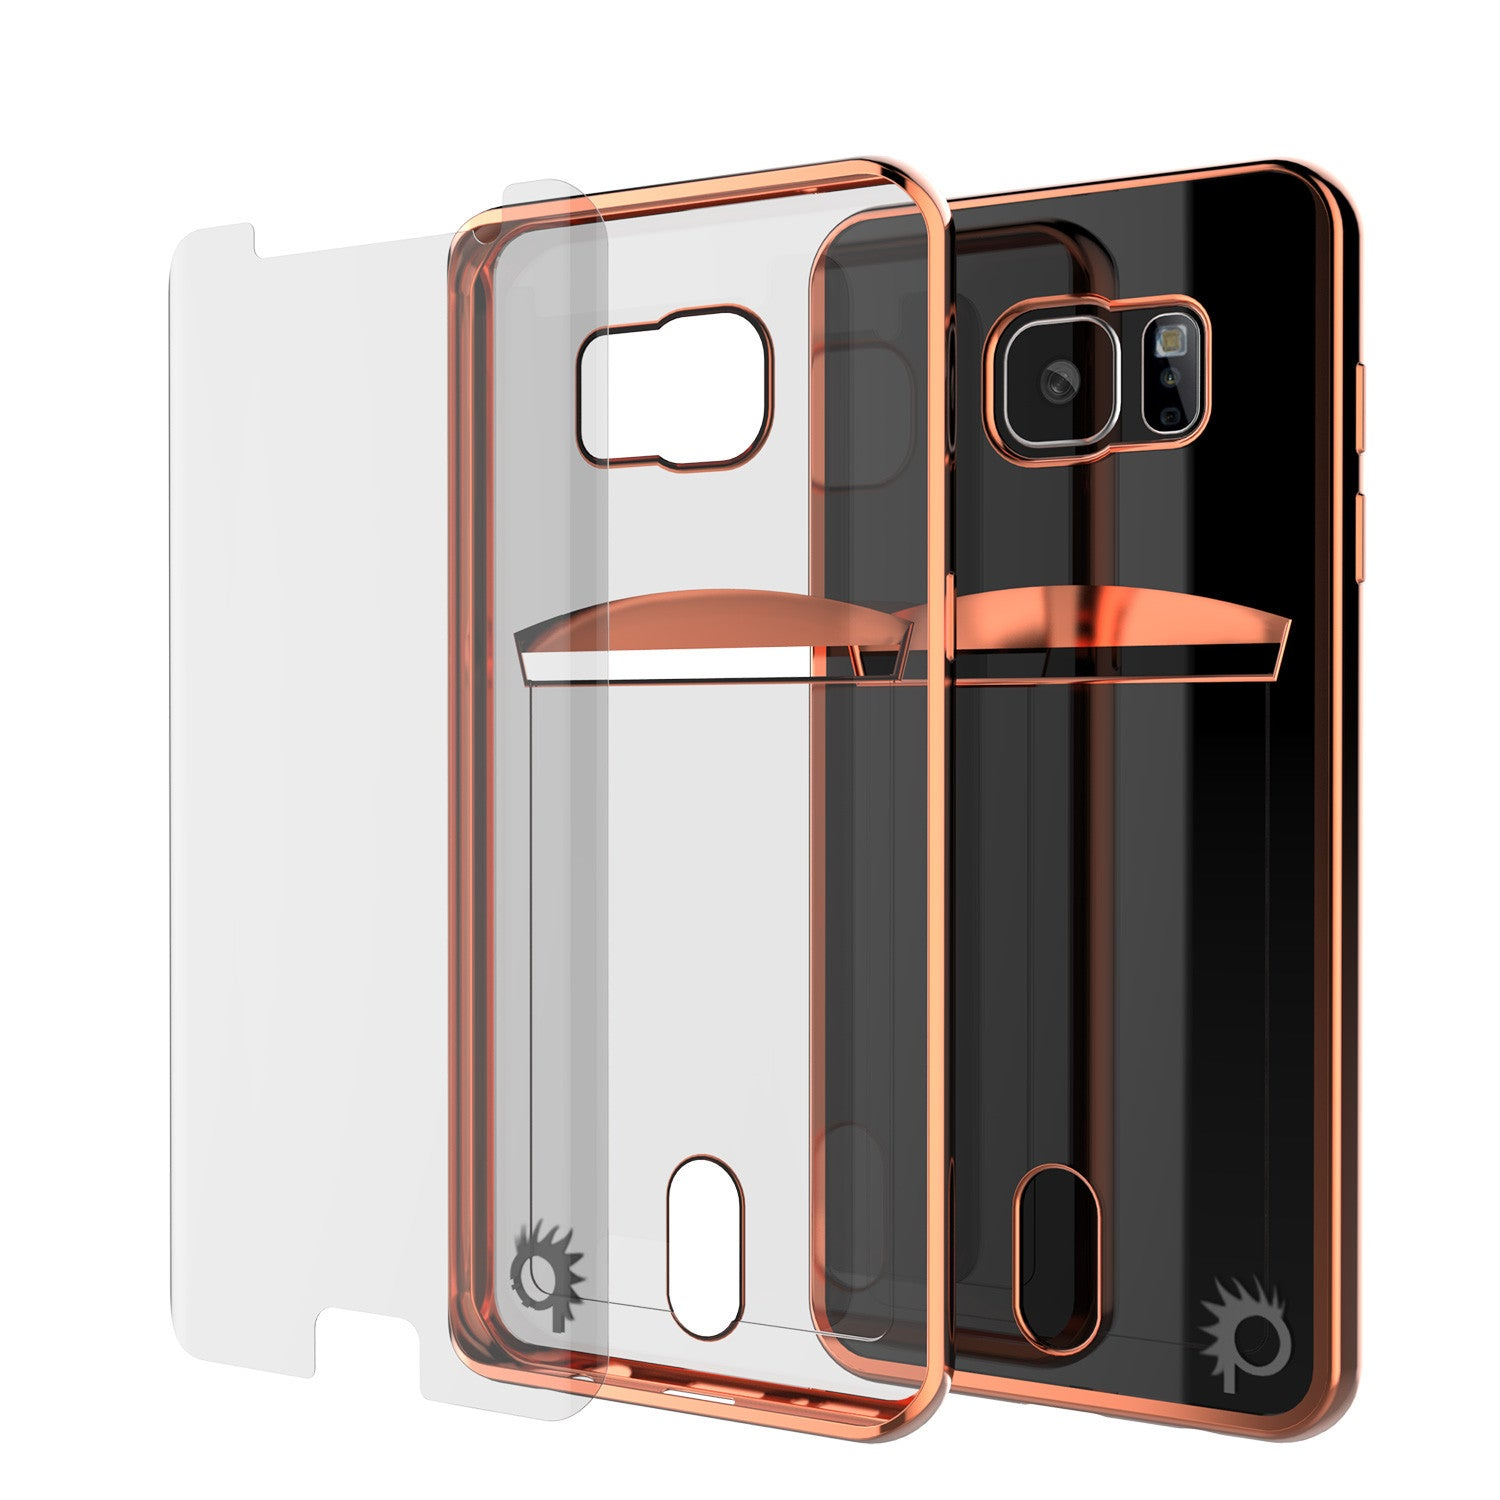 Galaxy S7 EDGE Case, PUNKCASE® LUCID Rose Gold Series | Card Slot | SHIELD Screen Protector